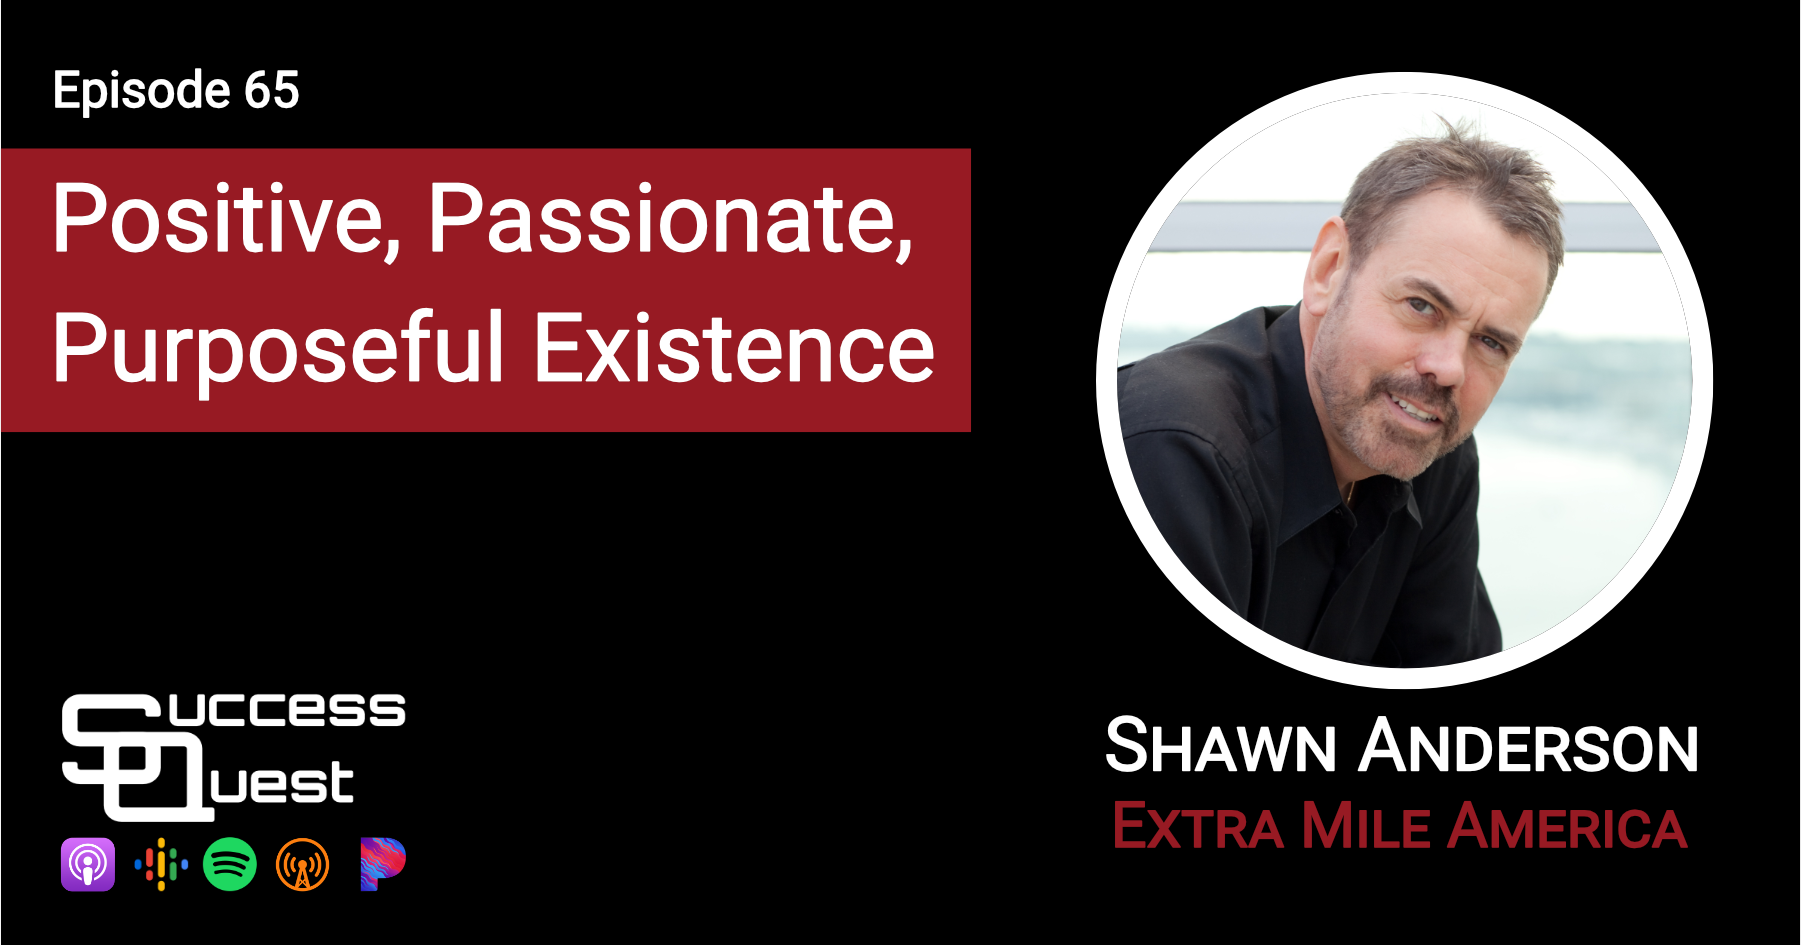 Positive, Passionate, Purposeful Existence Shawn Anderson Extra Mile America SuccessQuest